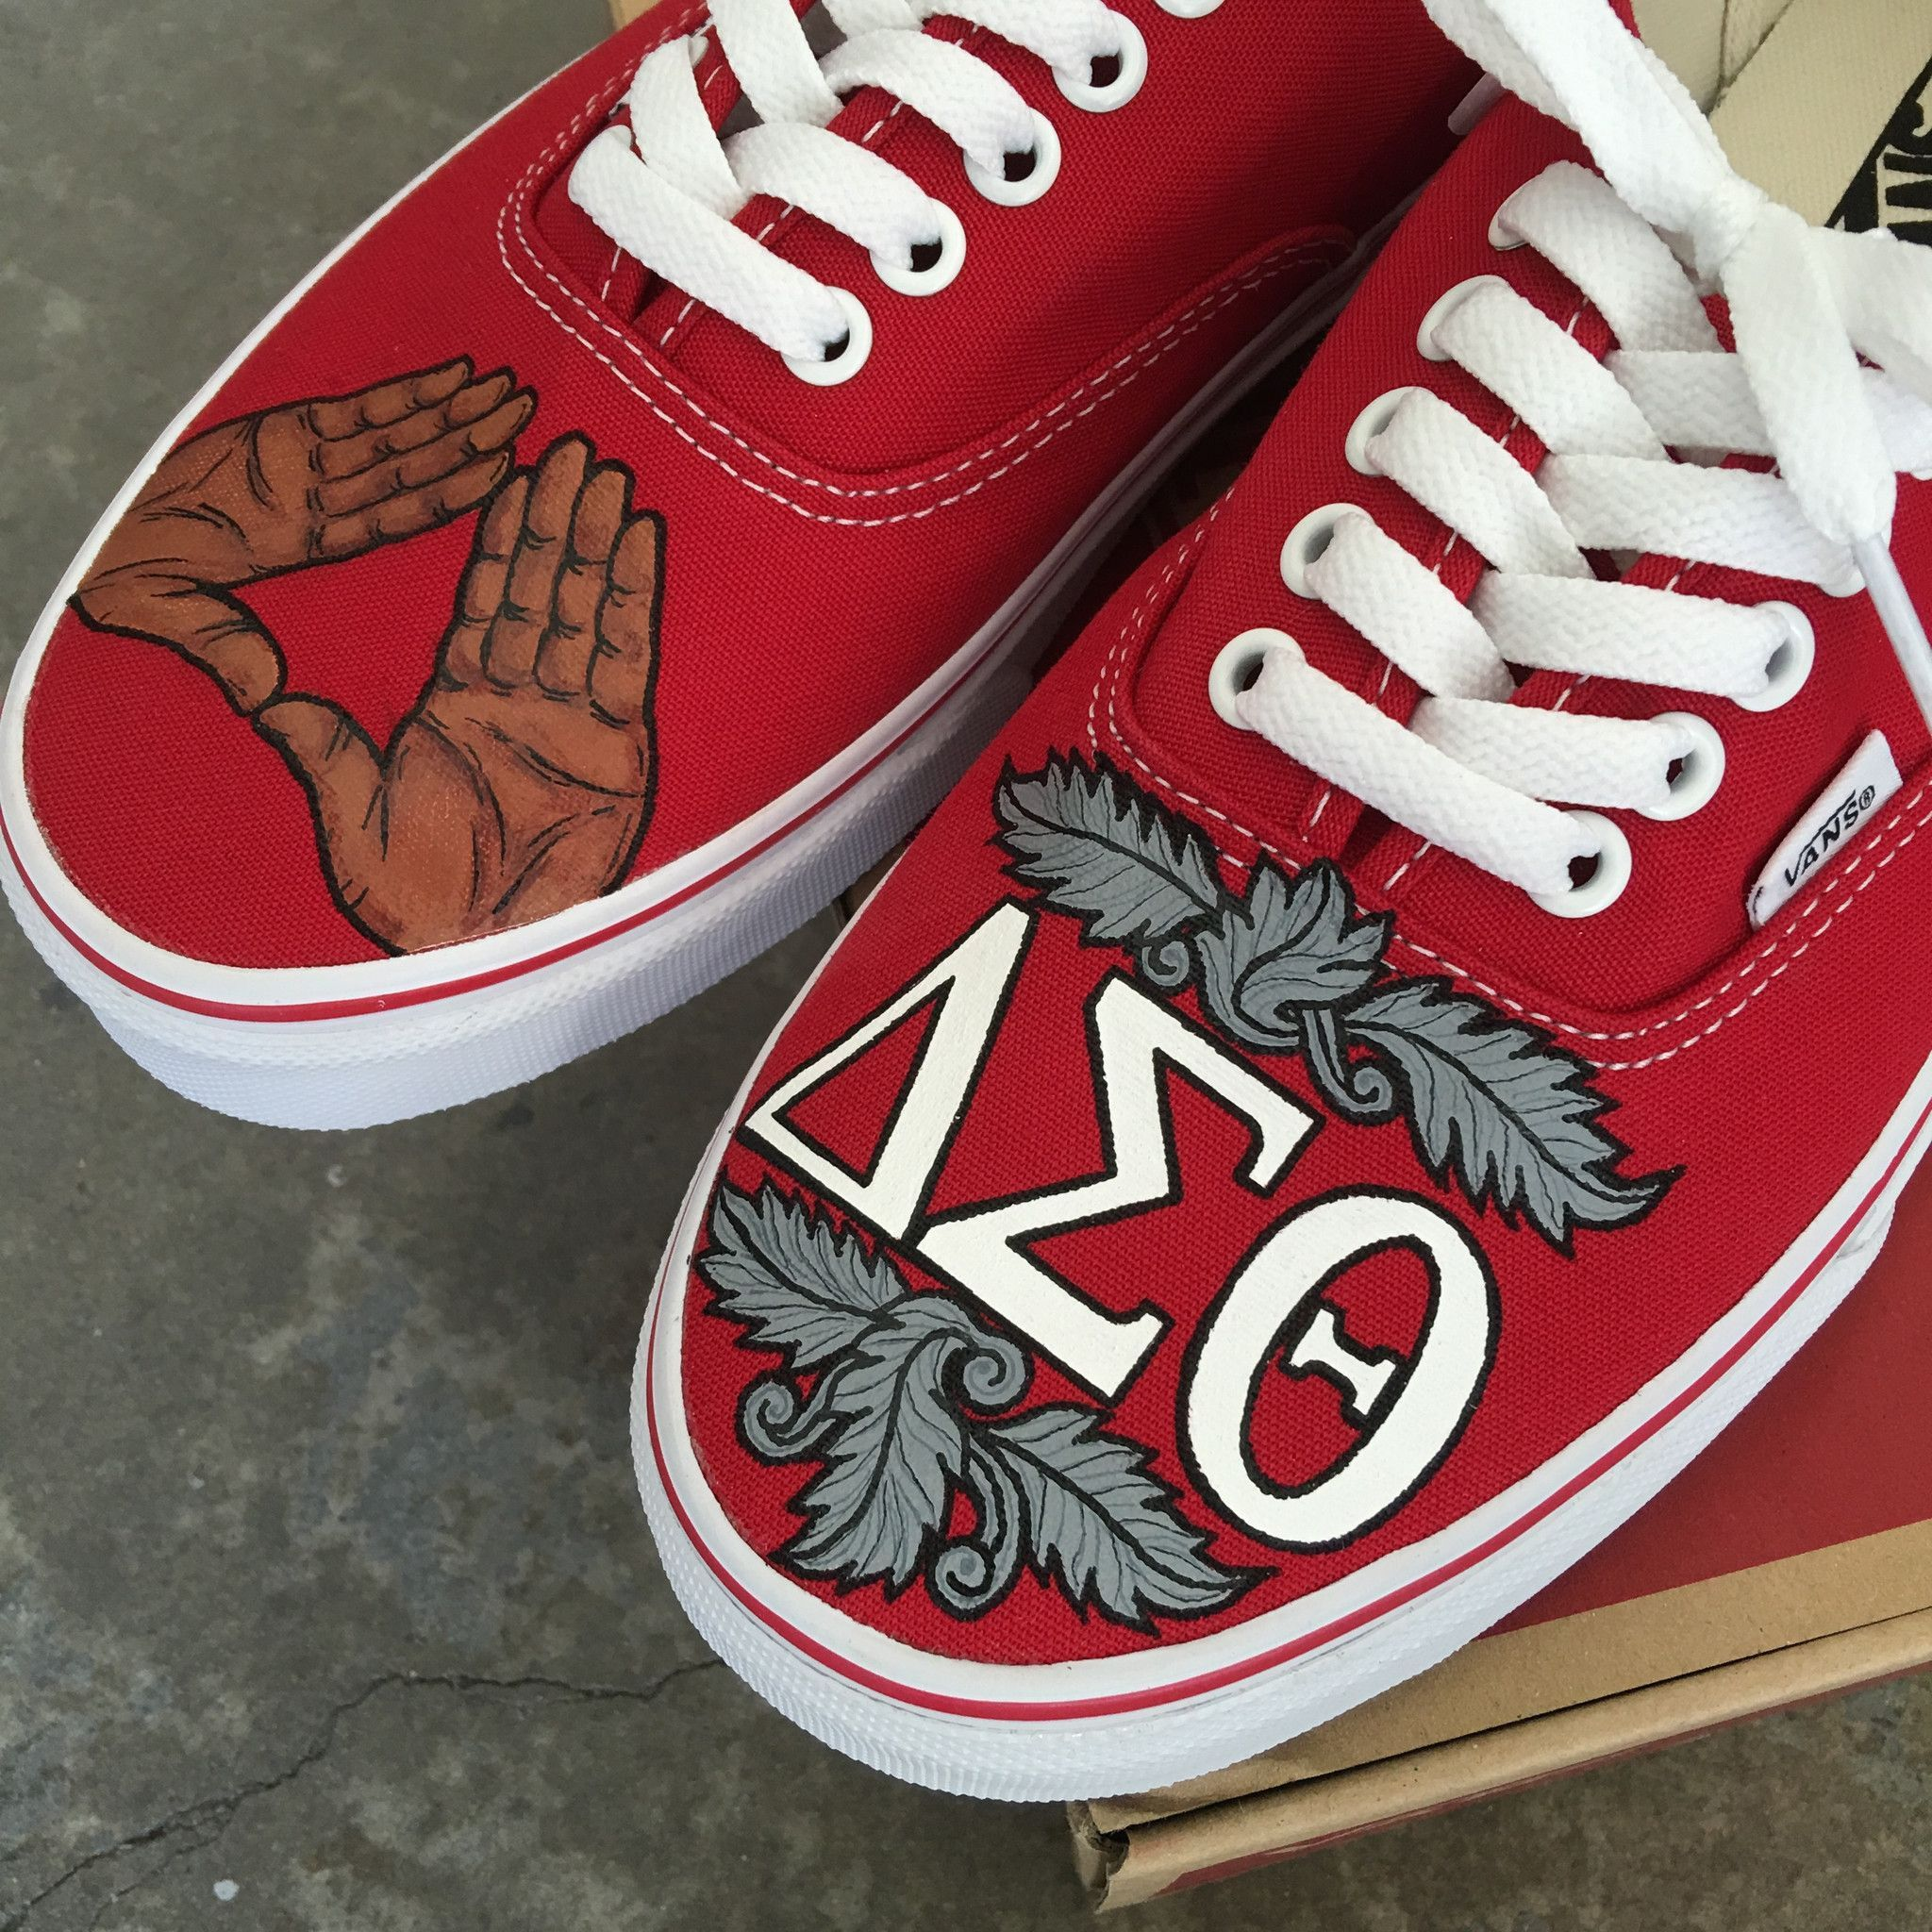 0ba7fa2b946af3 These custom Vans are the Delta Sigma Theta Vans shown in the blog post.  https